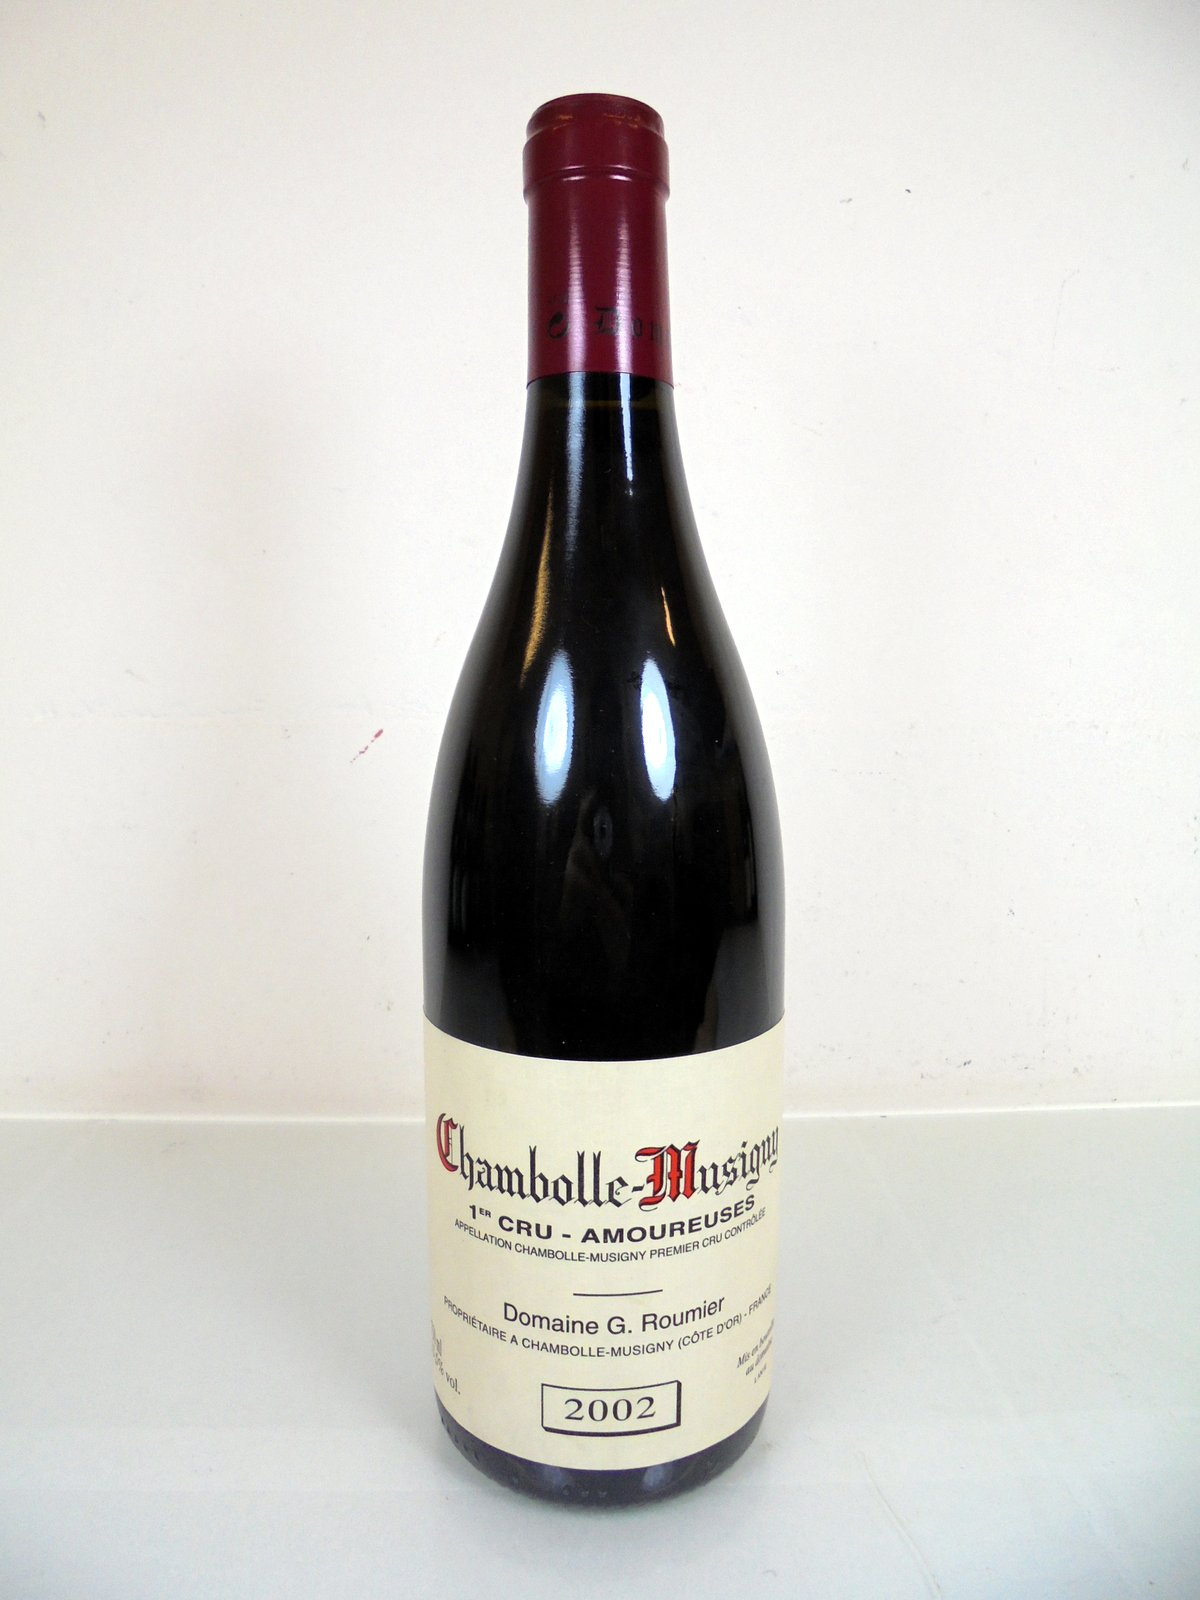 Chambolle Musigny Amoureuses